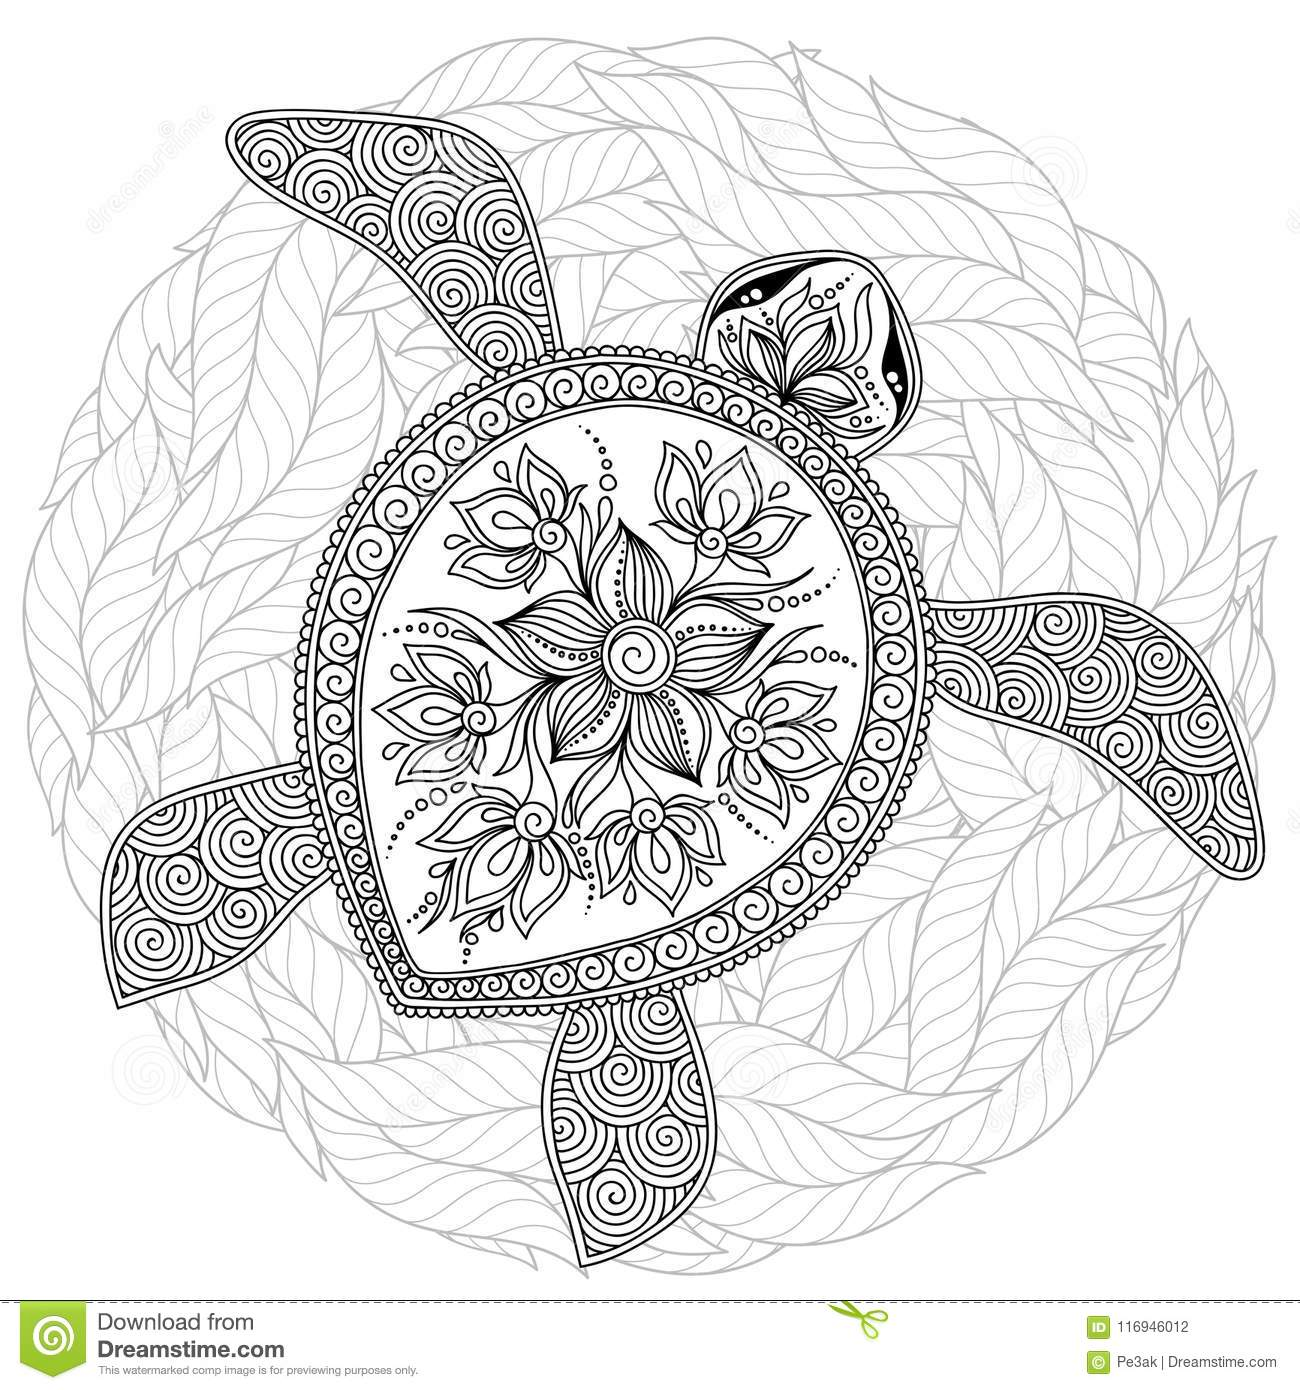 Free Printable Turtle Coloring Pages For Kids | Turtle coloring ... | 1390x1300